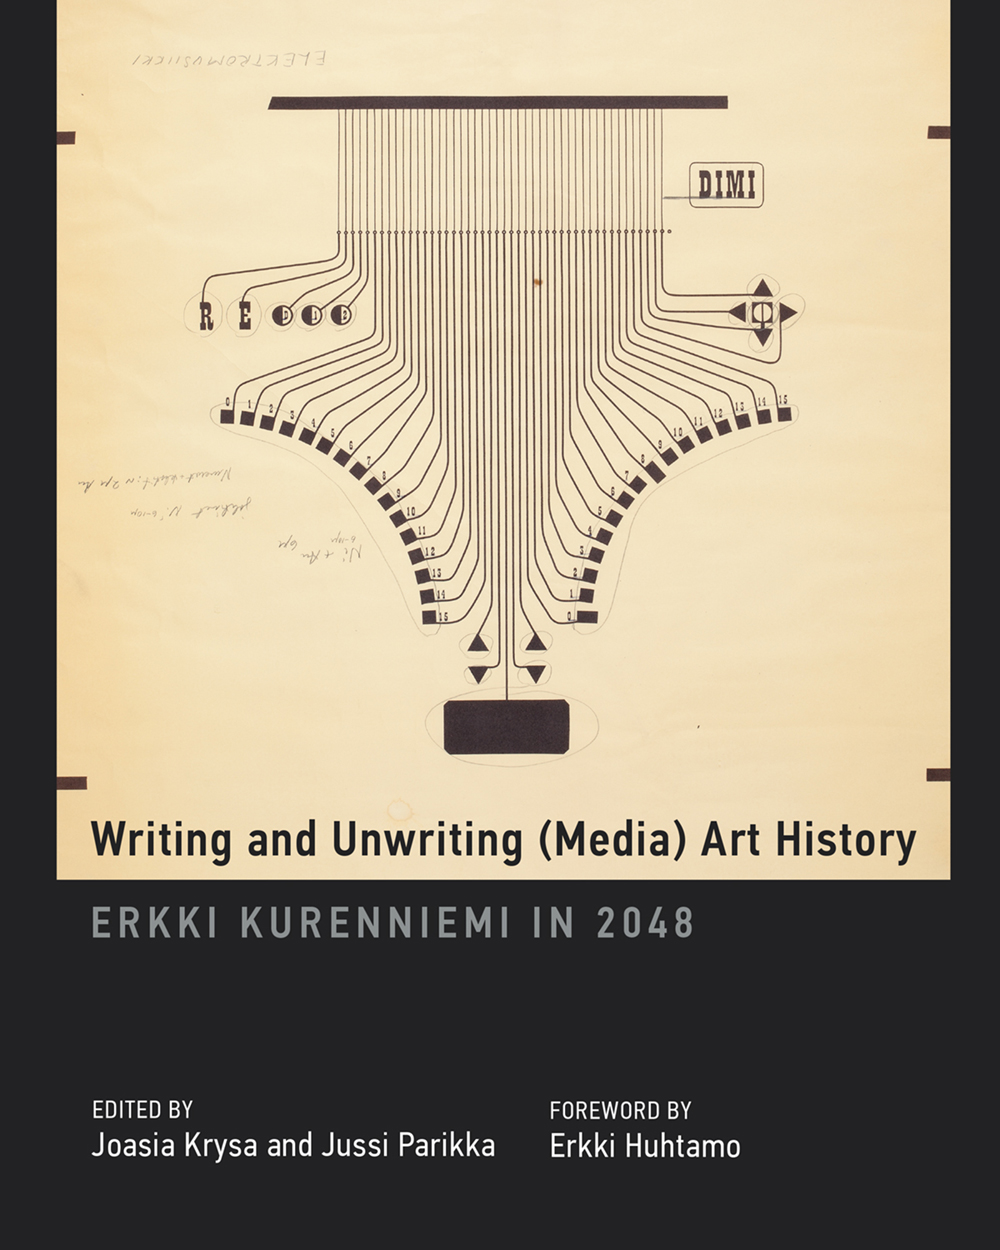 Writing and Unwriting (Media) Art History    -    Erkki Kurenniemi in 2048    (edited by Joasia Krysa and Jussi Parikka, 2015) offers an excavation, a critical mapping, and an elaboration of scientist-humanist-artist Erkki Kurenniemi's multiplicities.